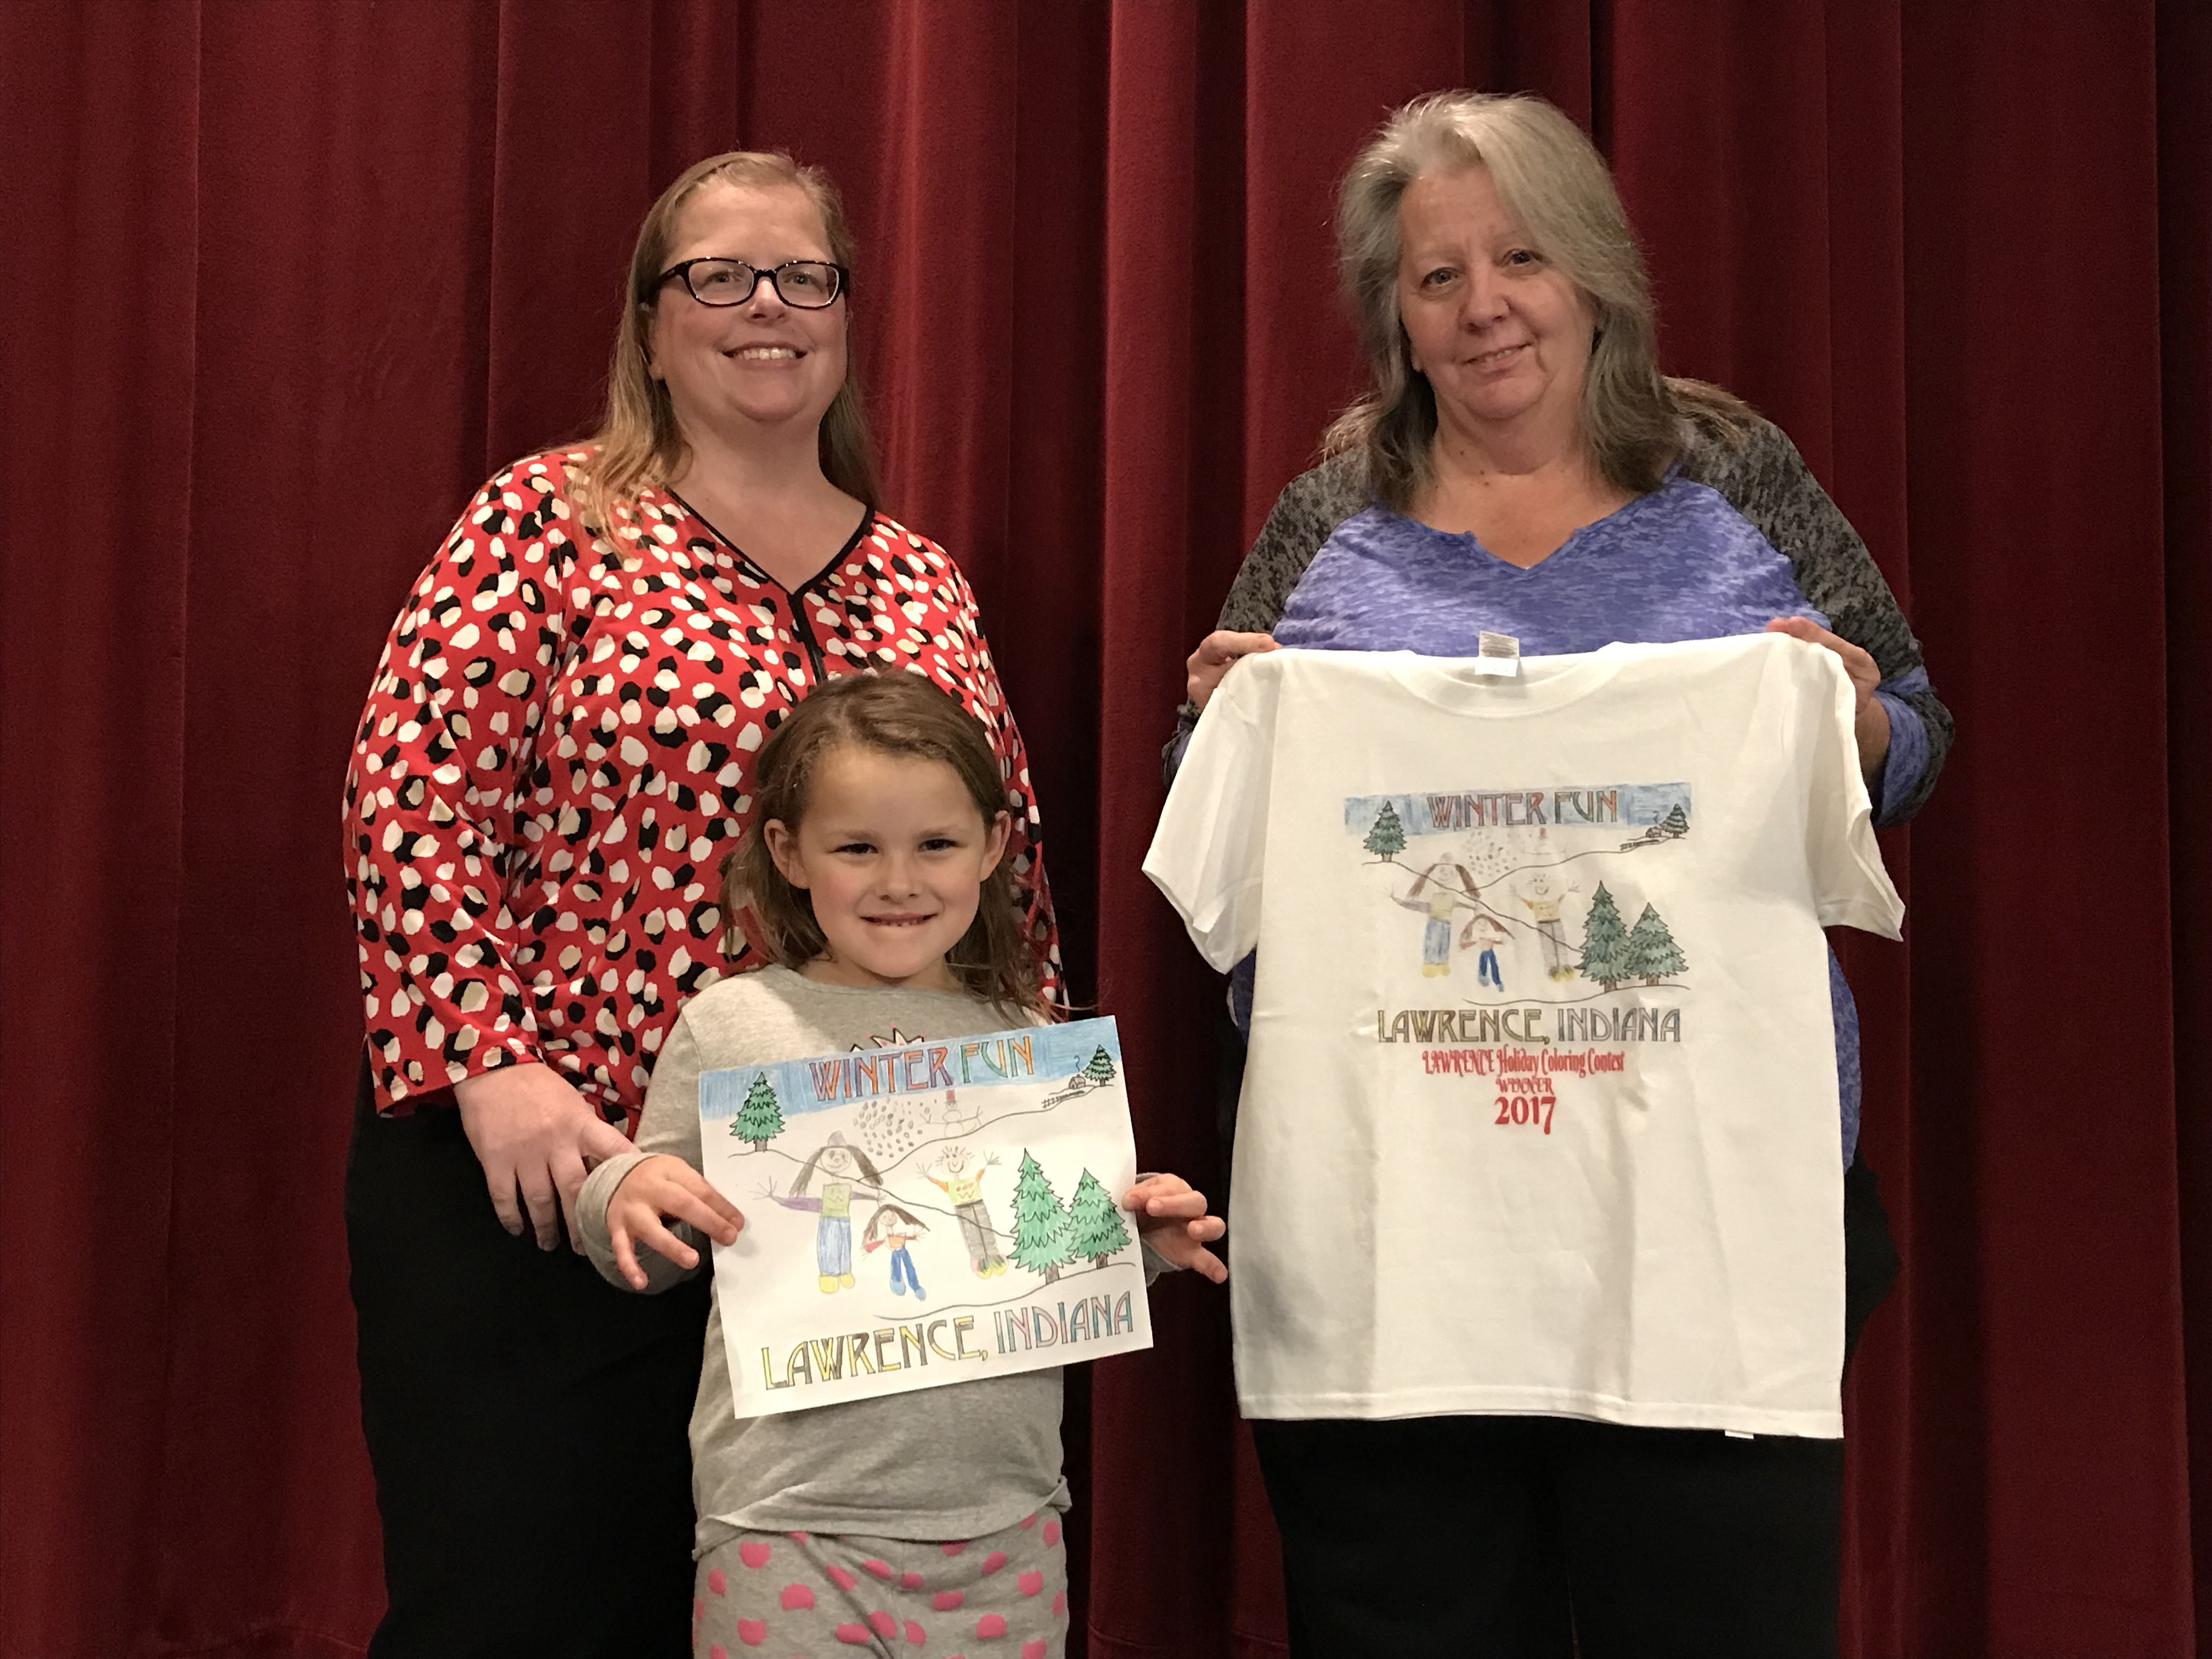 Congrats to Emily Bullock, our Lawrence Drawing Contest Winner!